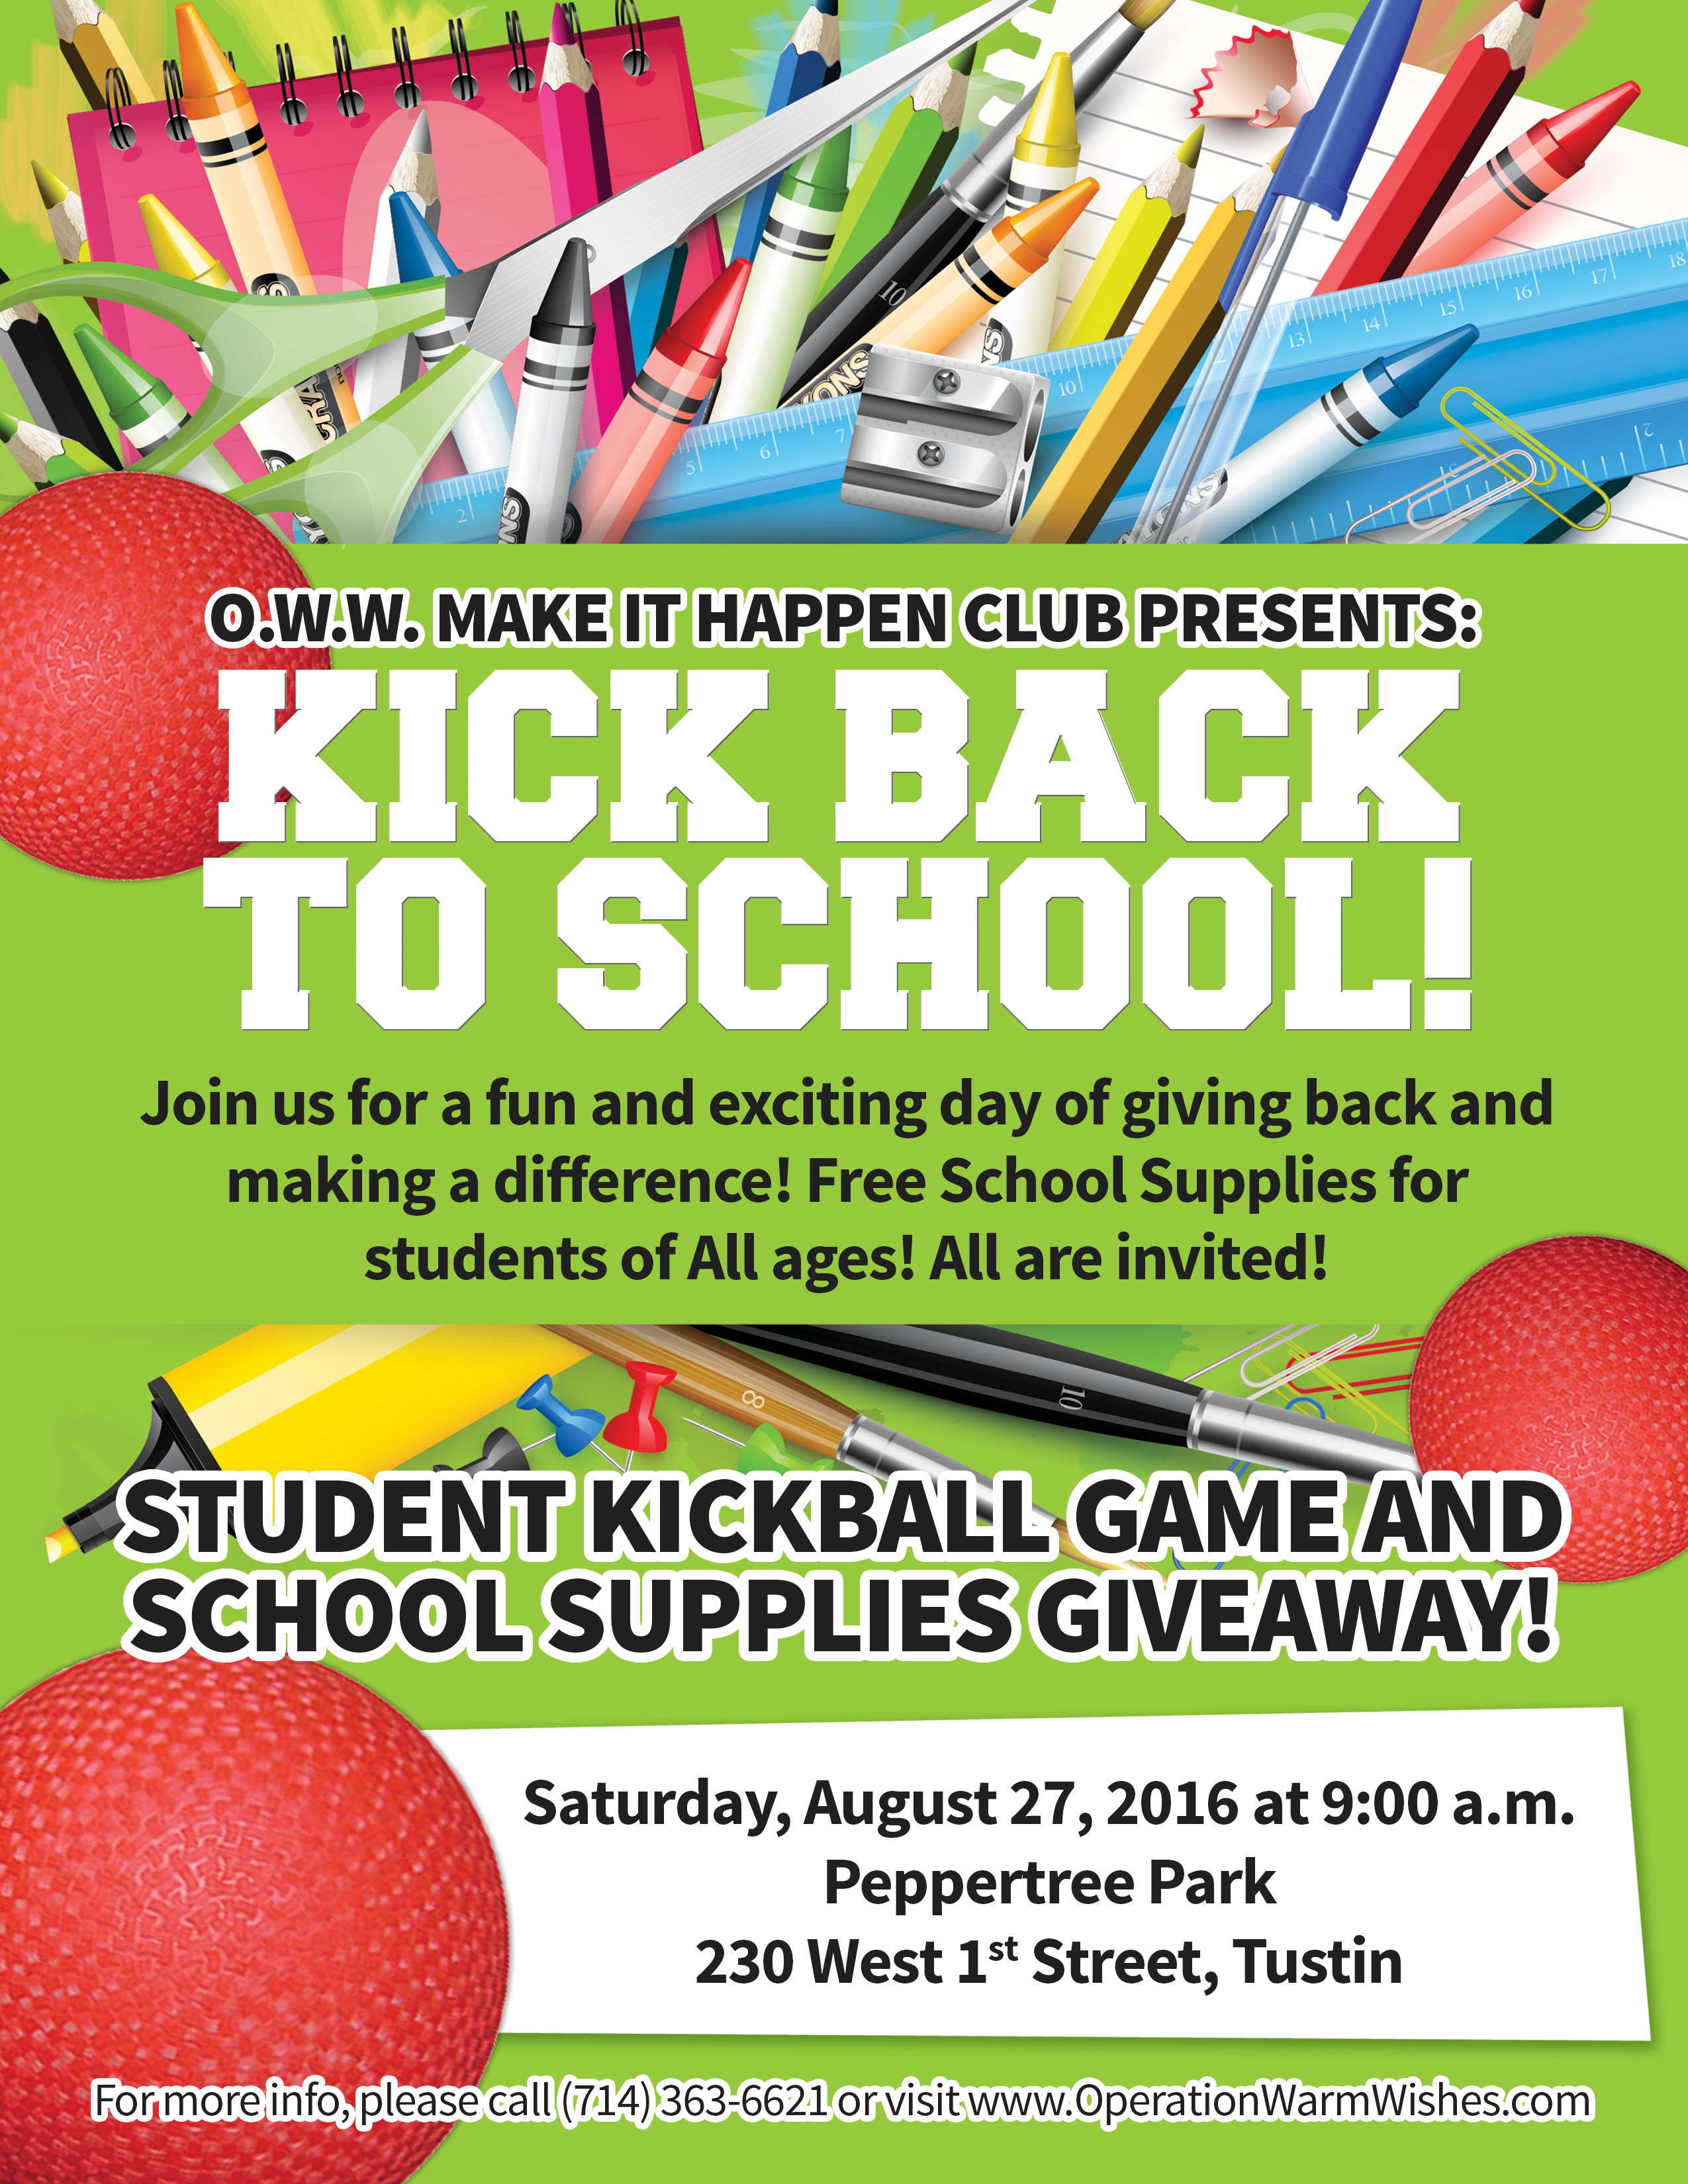 BACK TO SCHOOL GIVEAWAY 2019 DELAWARE